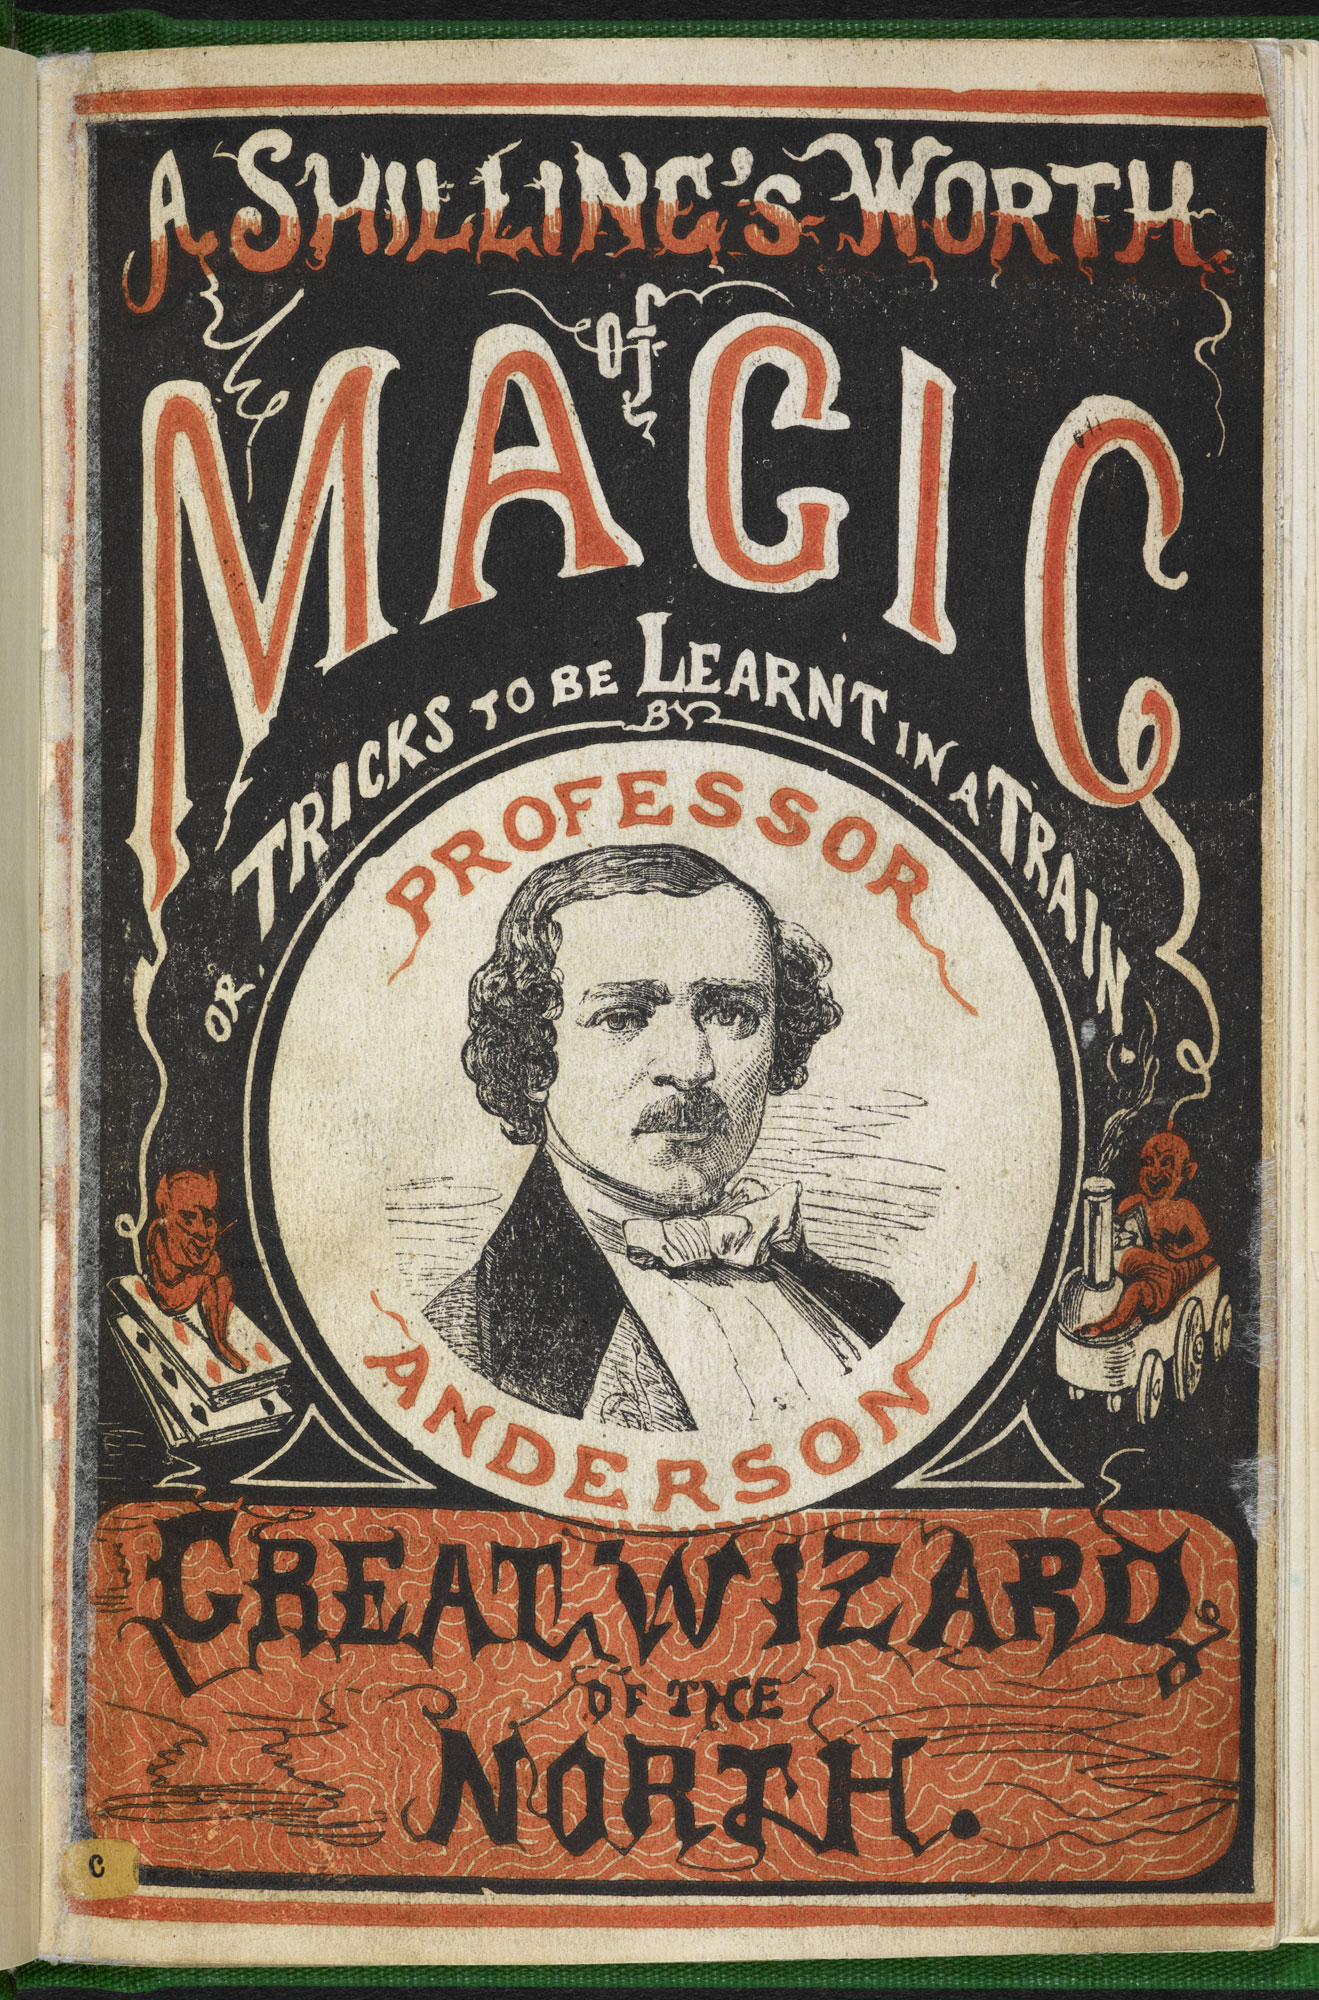 The Fashionable Science of Parlour Magic  [page: front cover]